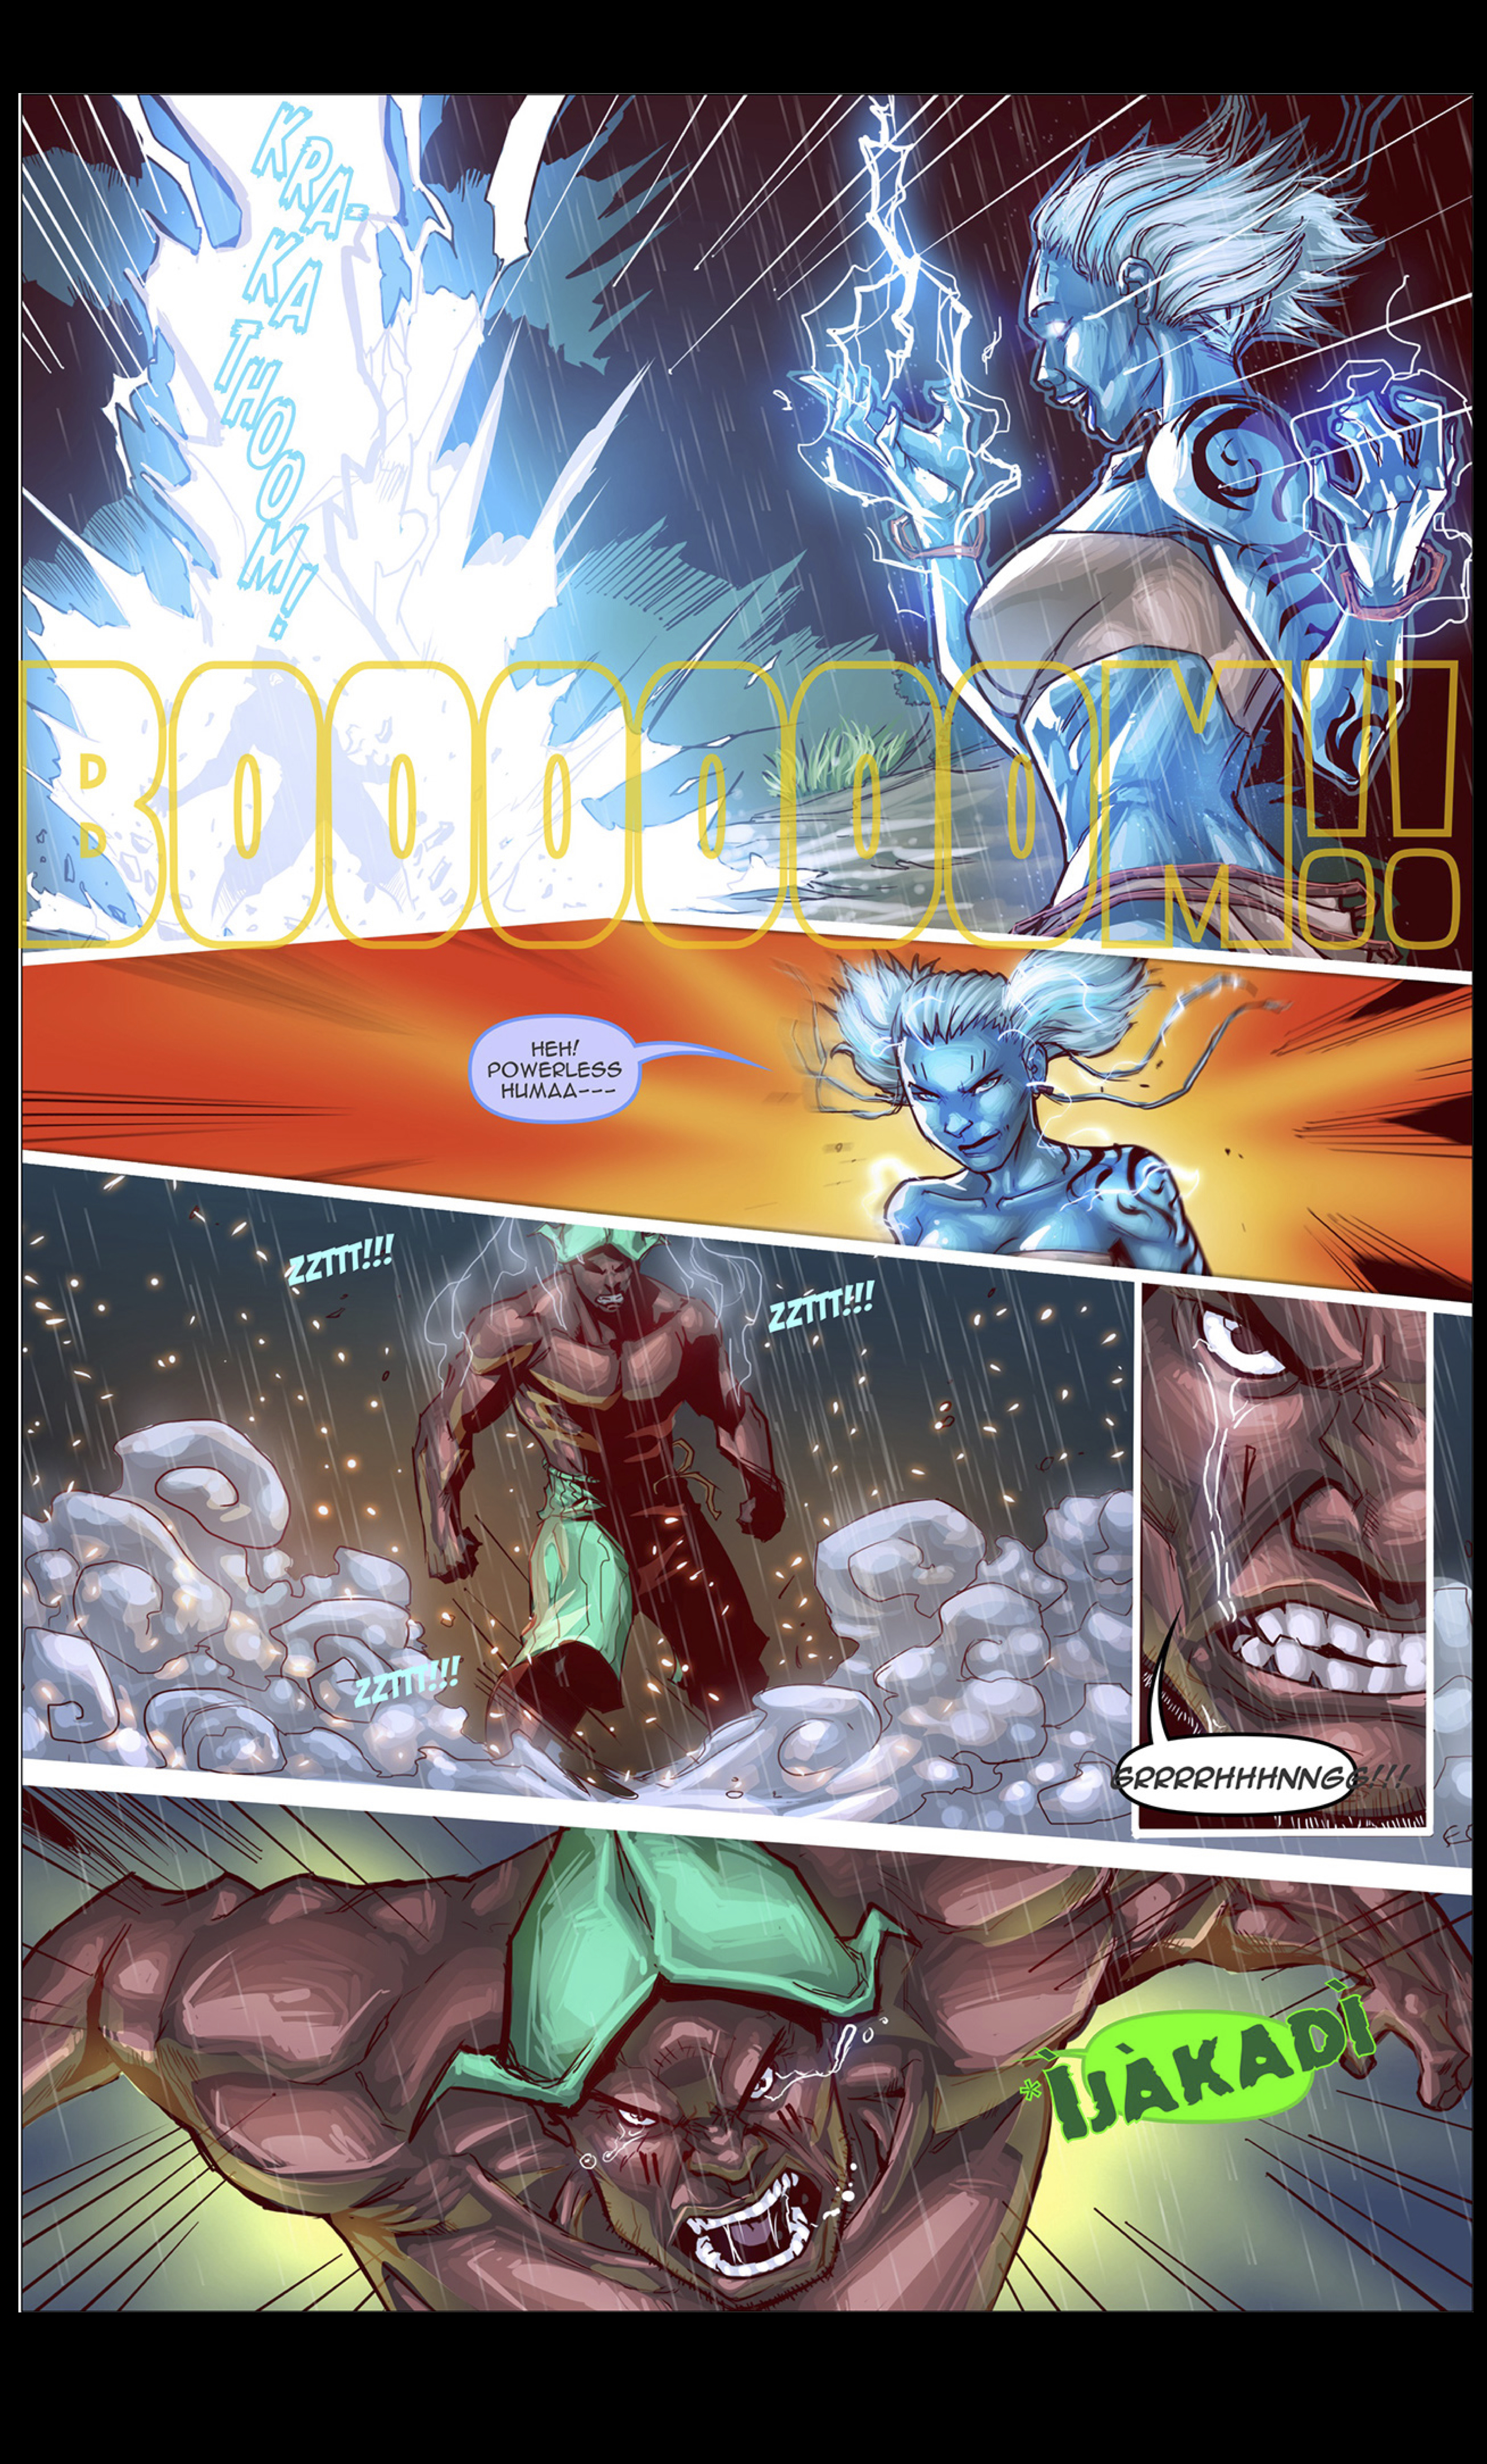 panel depicting fight between a mortal and a god from visionary ascension comic